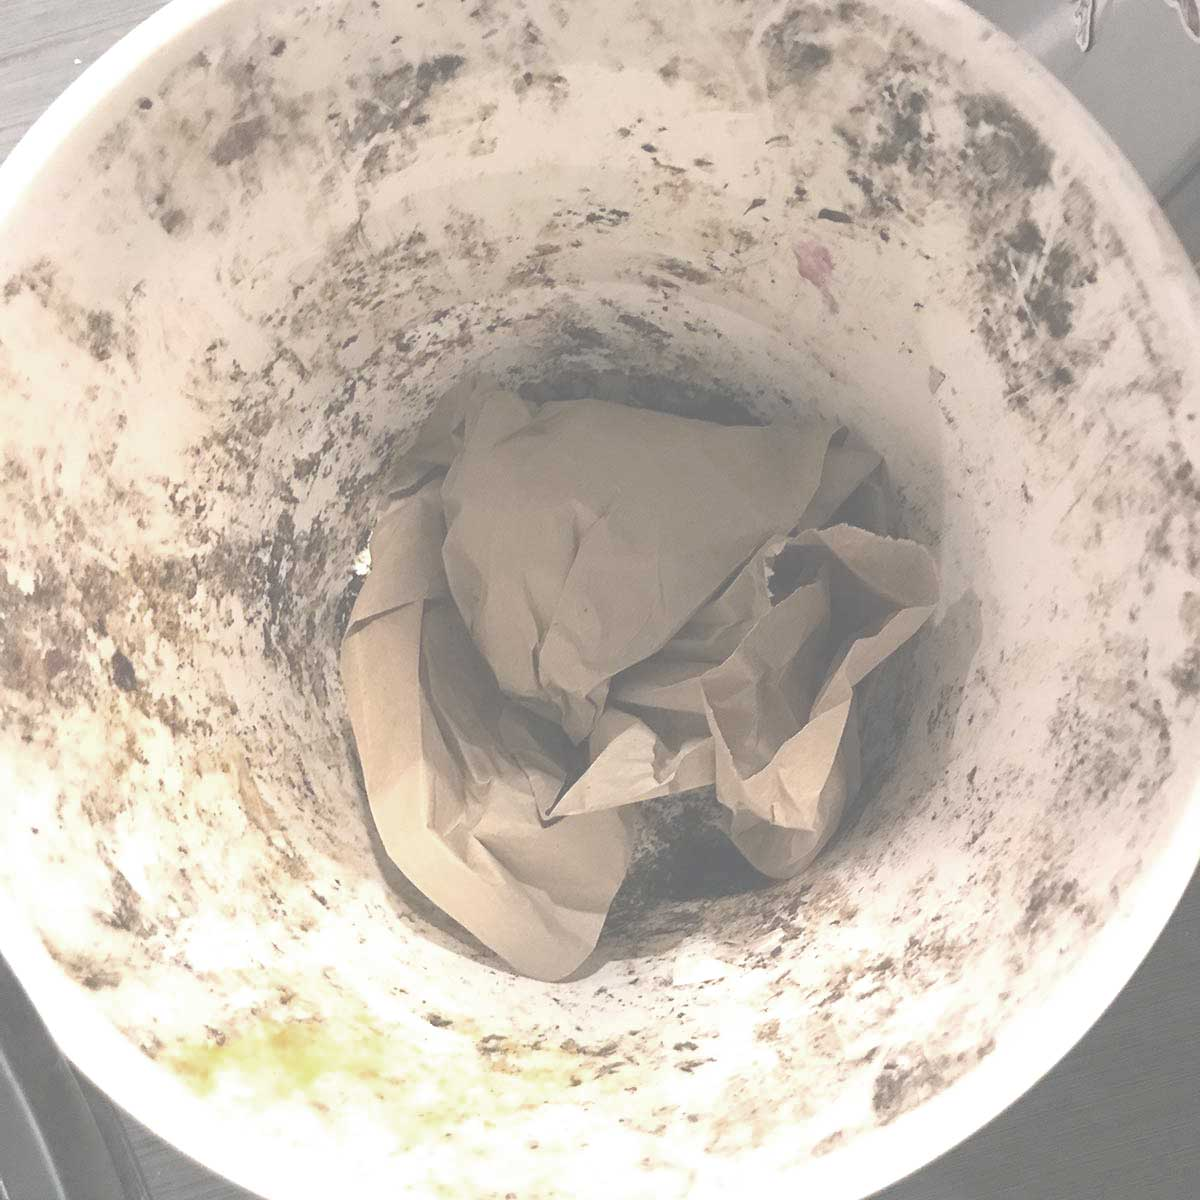 Bennett Compost suggested using crumpled up paper at the bottom of the bucket to make it easier to clean out